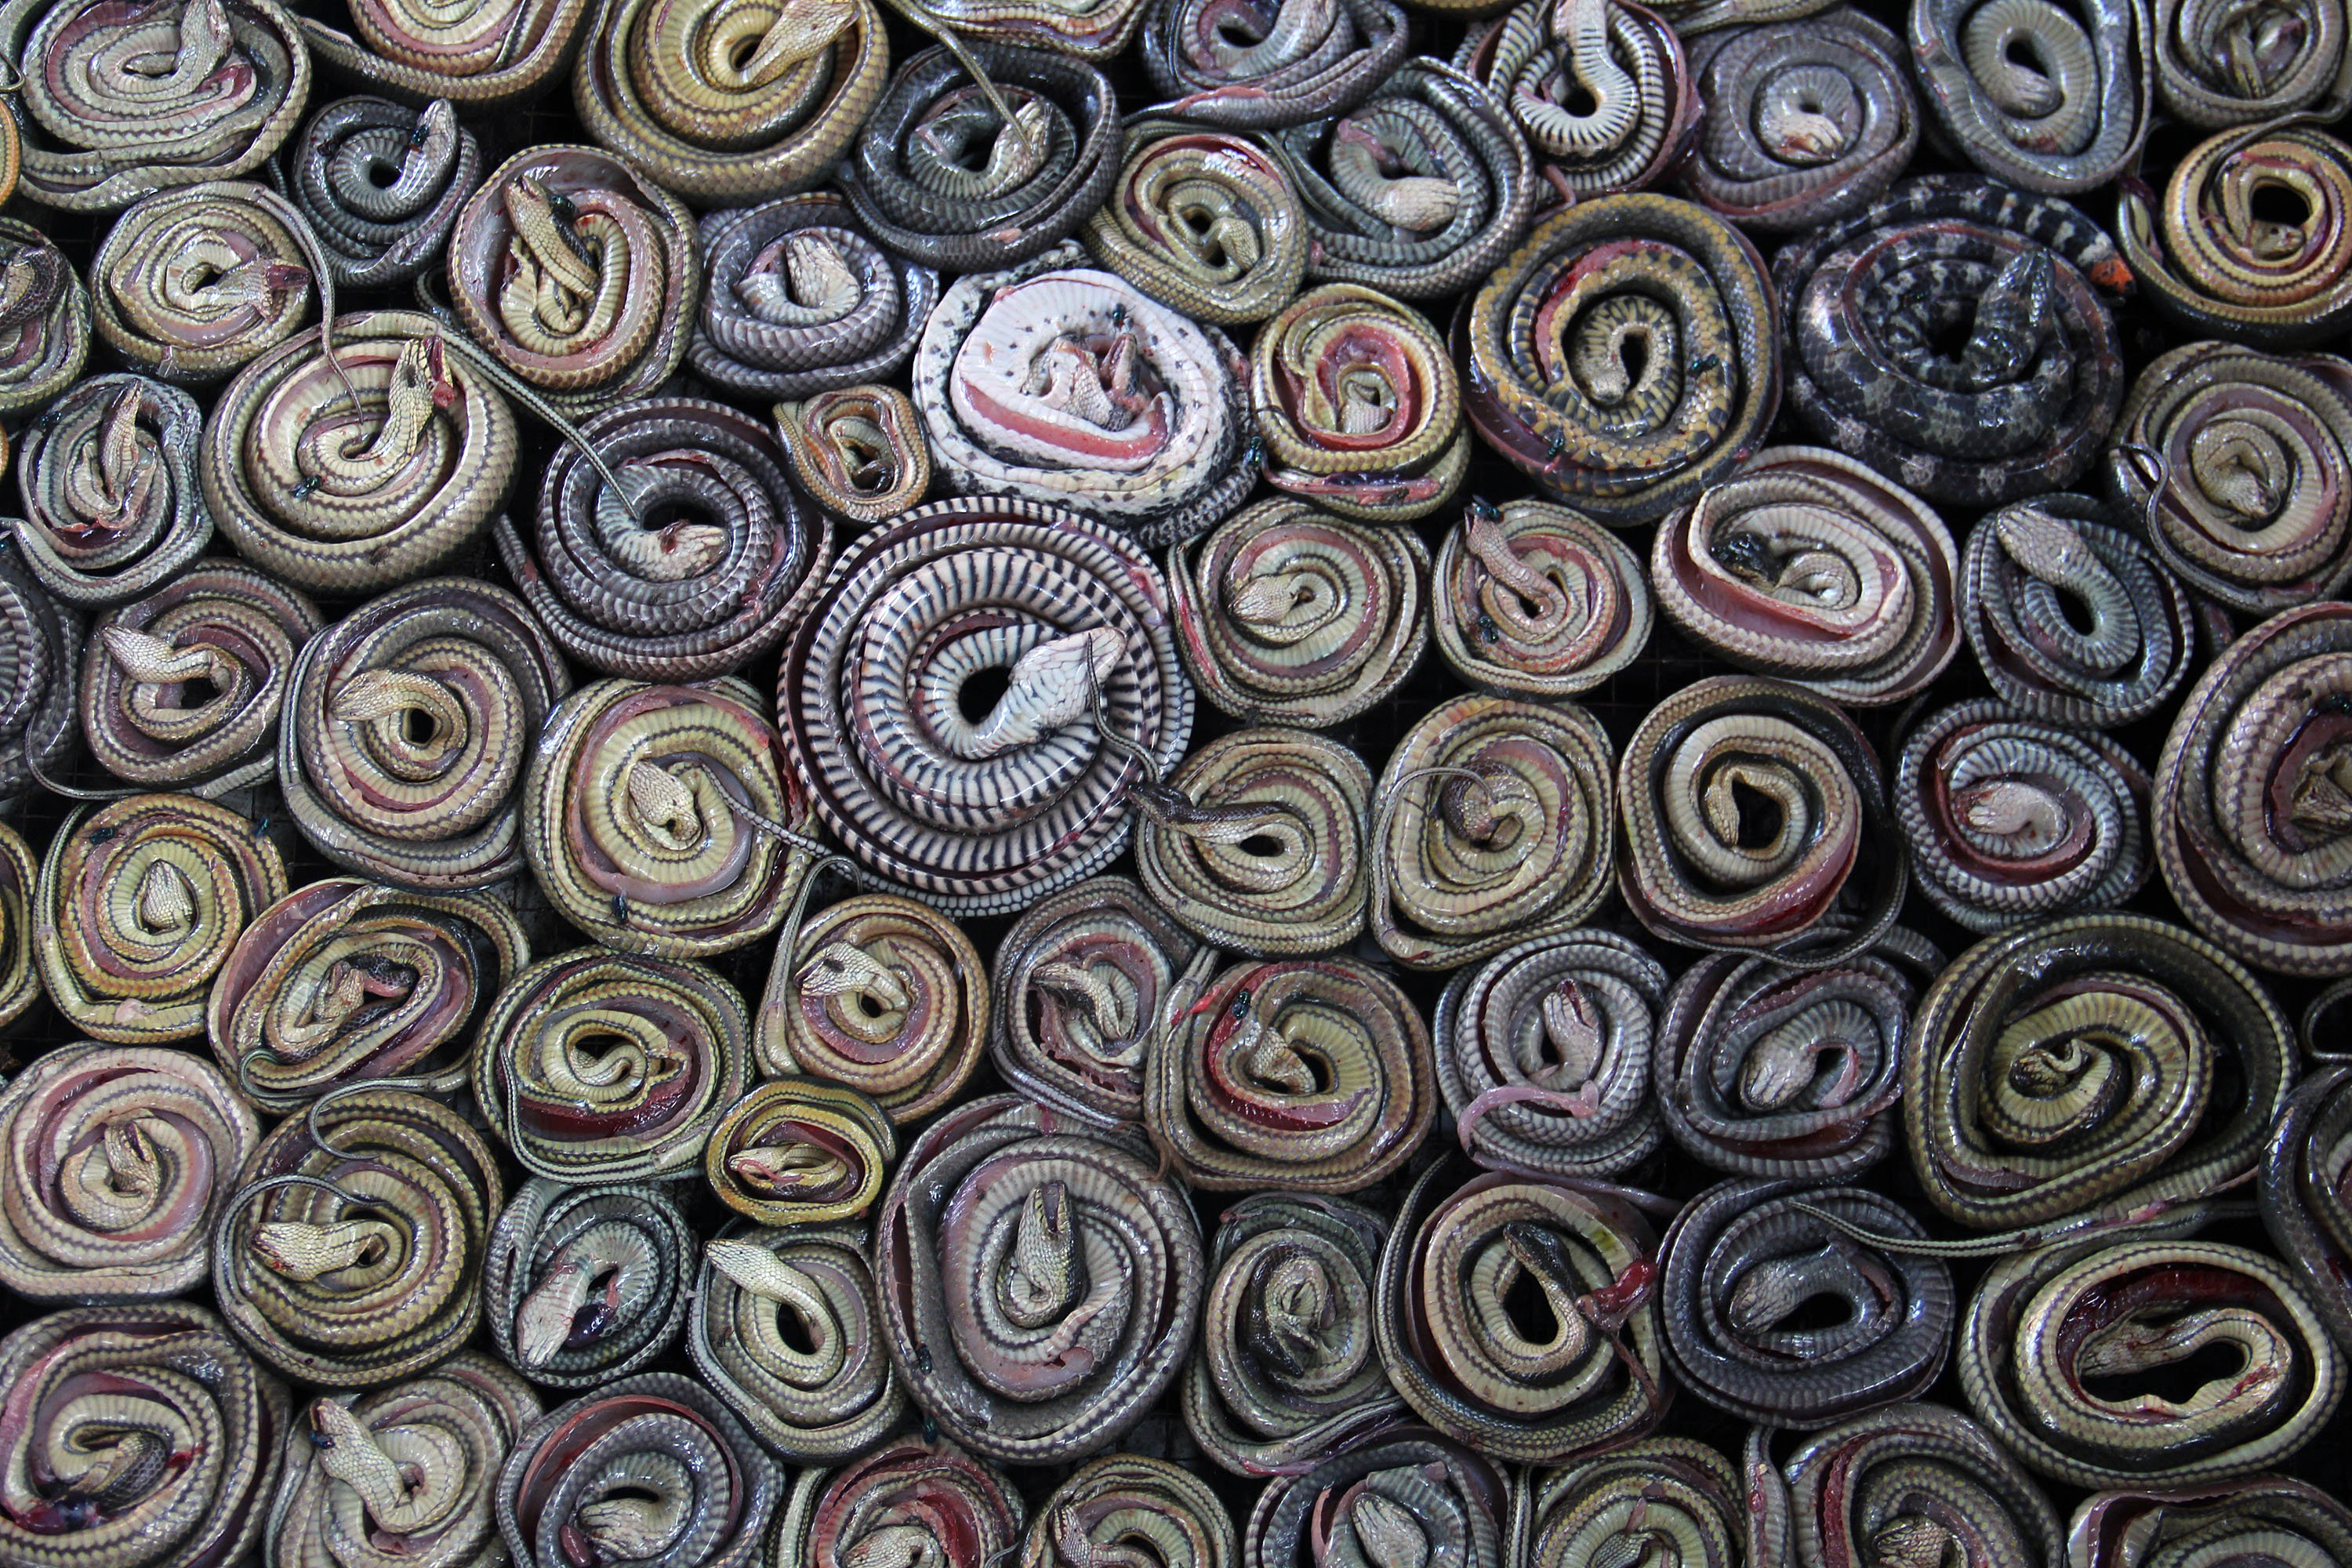 Snakes are collected and rolled before putting into the oven on March 2, 2014 in the village of Kertasura, Cirebon, Indonesia. At the slaughter house snake skins measuring in the hundreds of metres, are sold to bag factories in the West and Central Java provinces on a monthly basis.